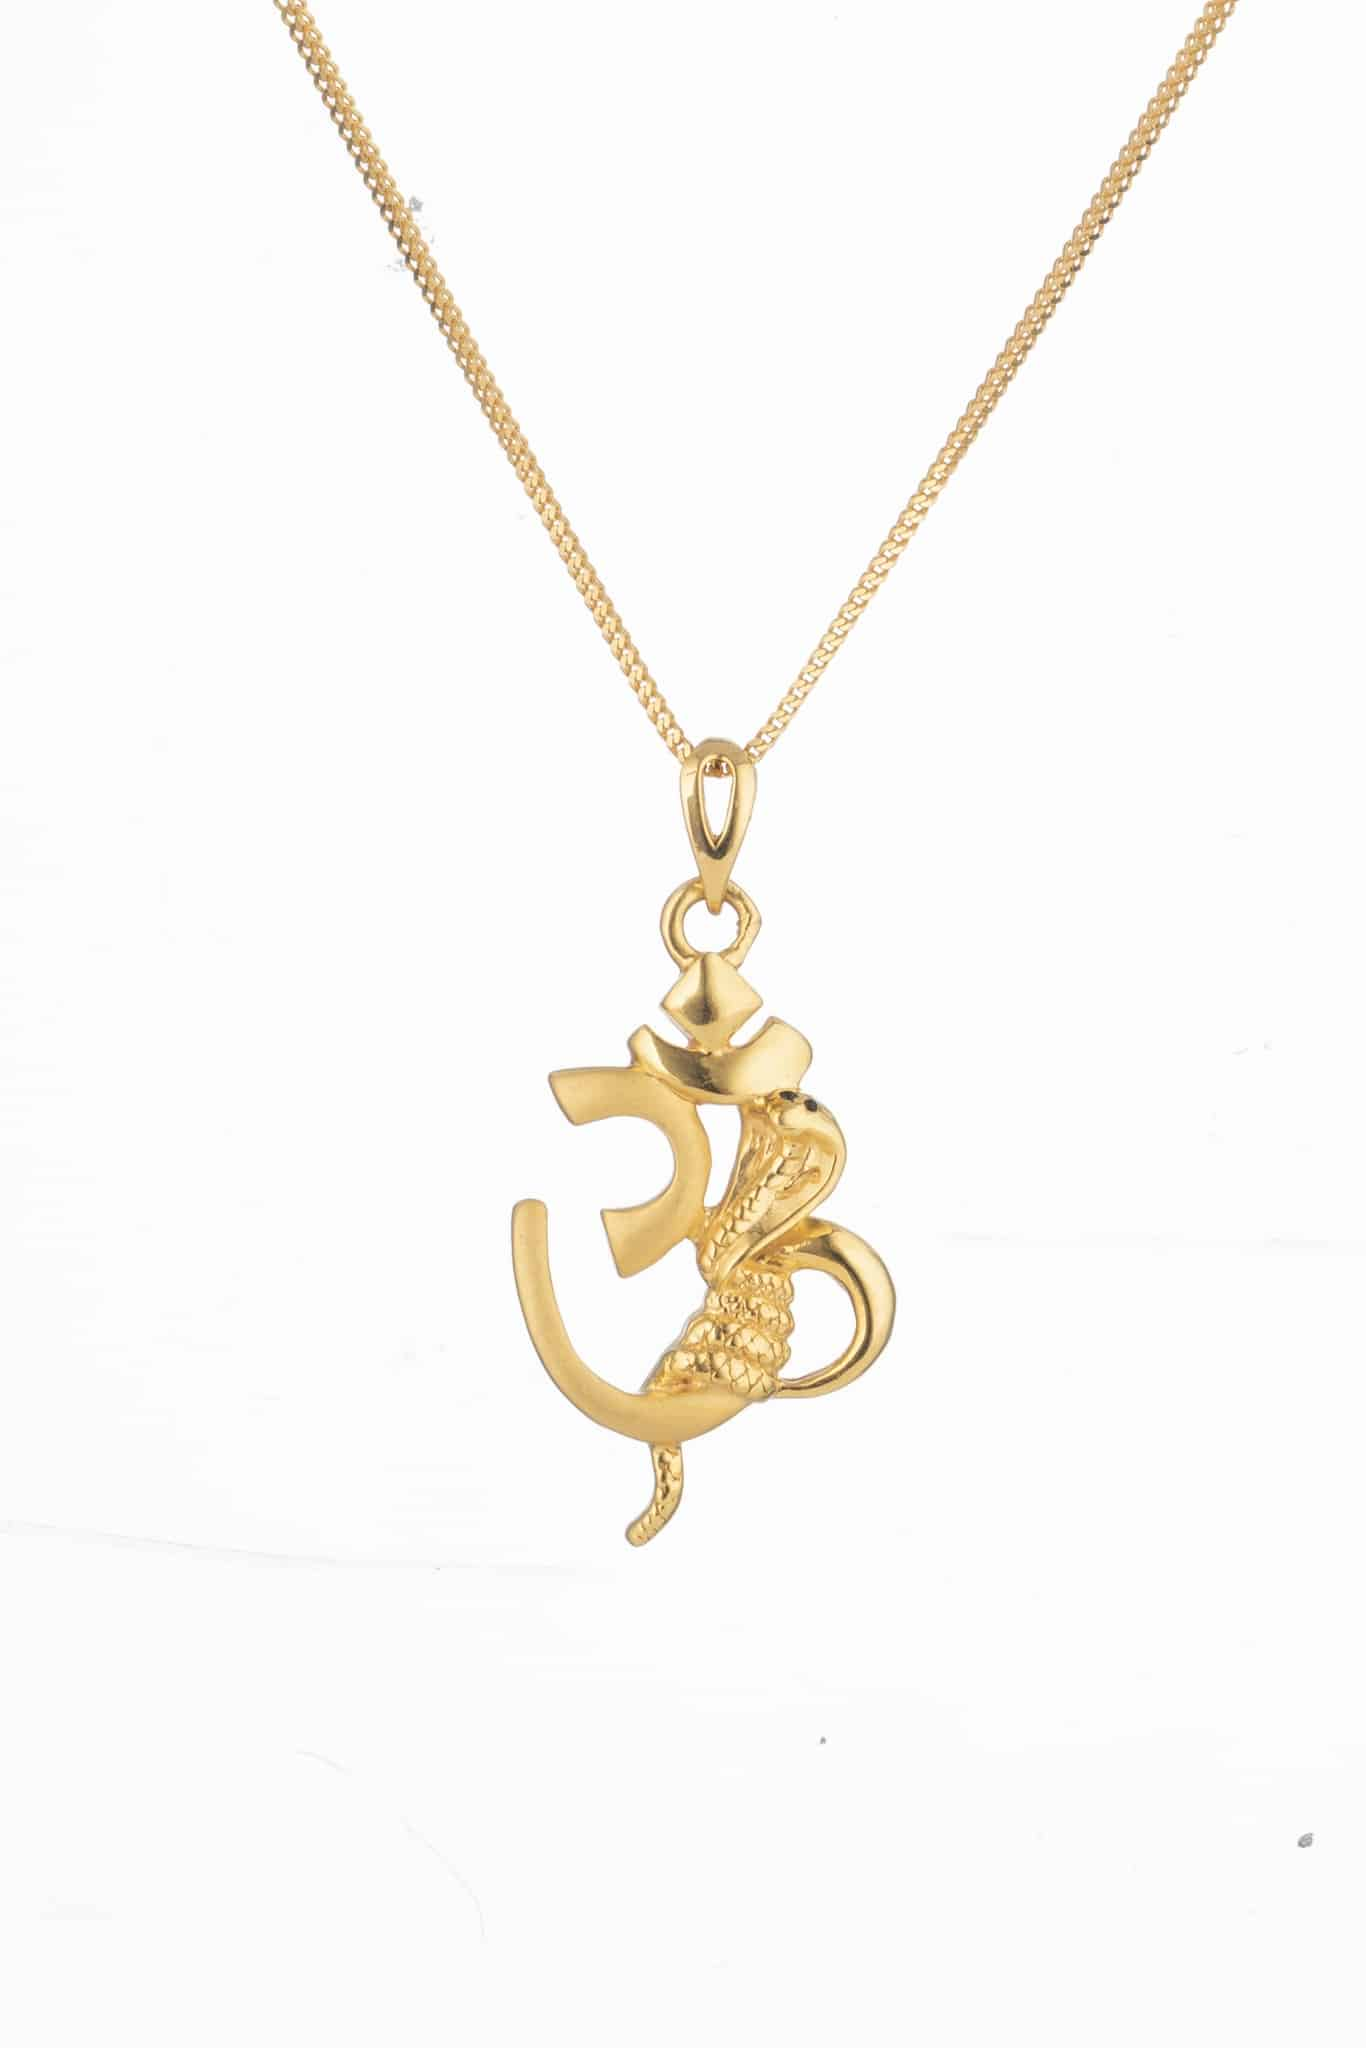 28757 - Fashionable Om Pendant